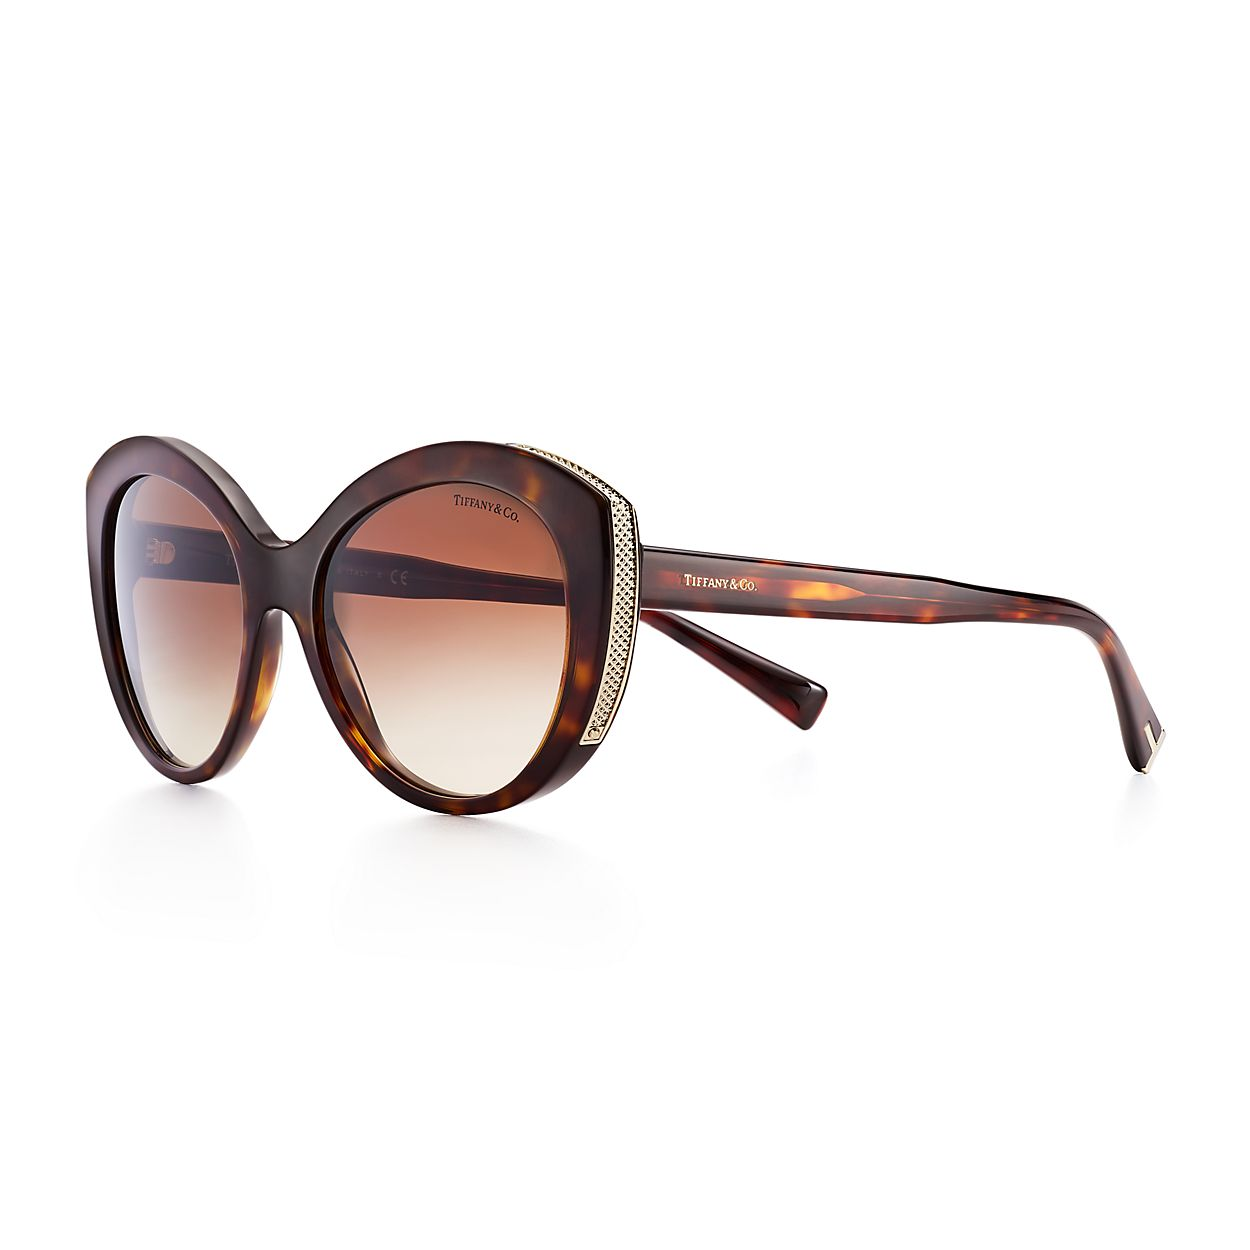 e5ba1a9ff5634 Diamond Point cat eye sunglasses in tortoise acetate and gold ...